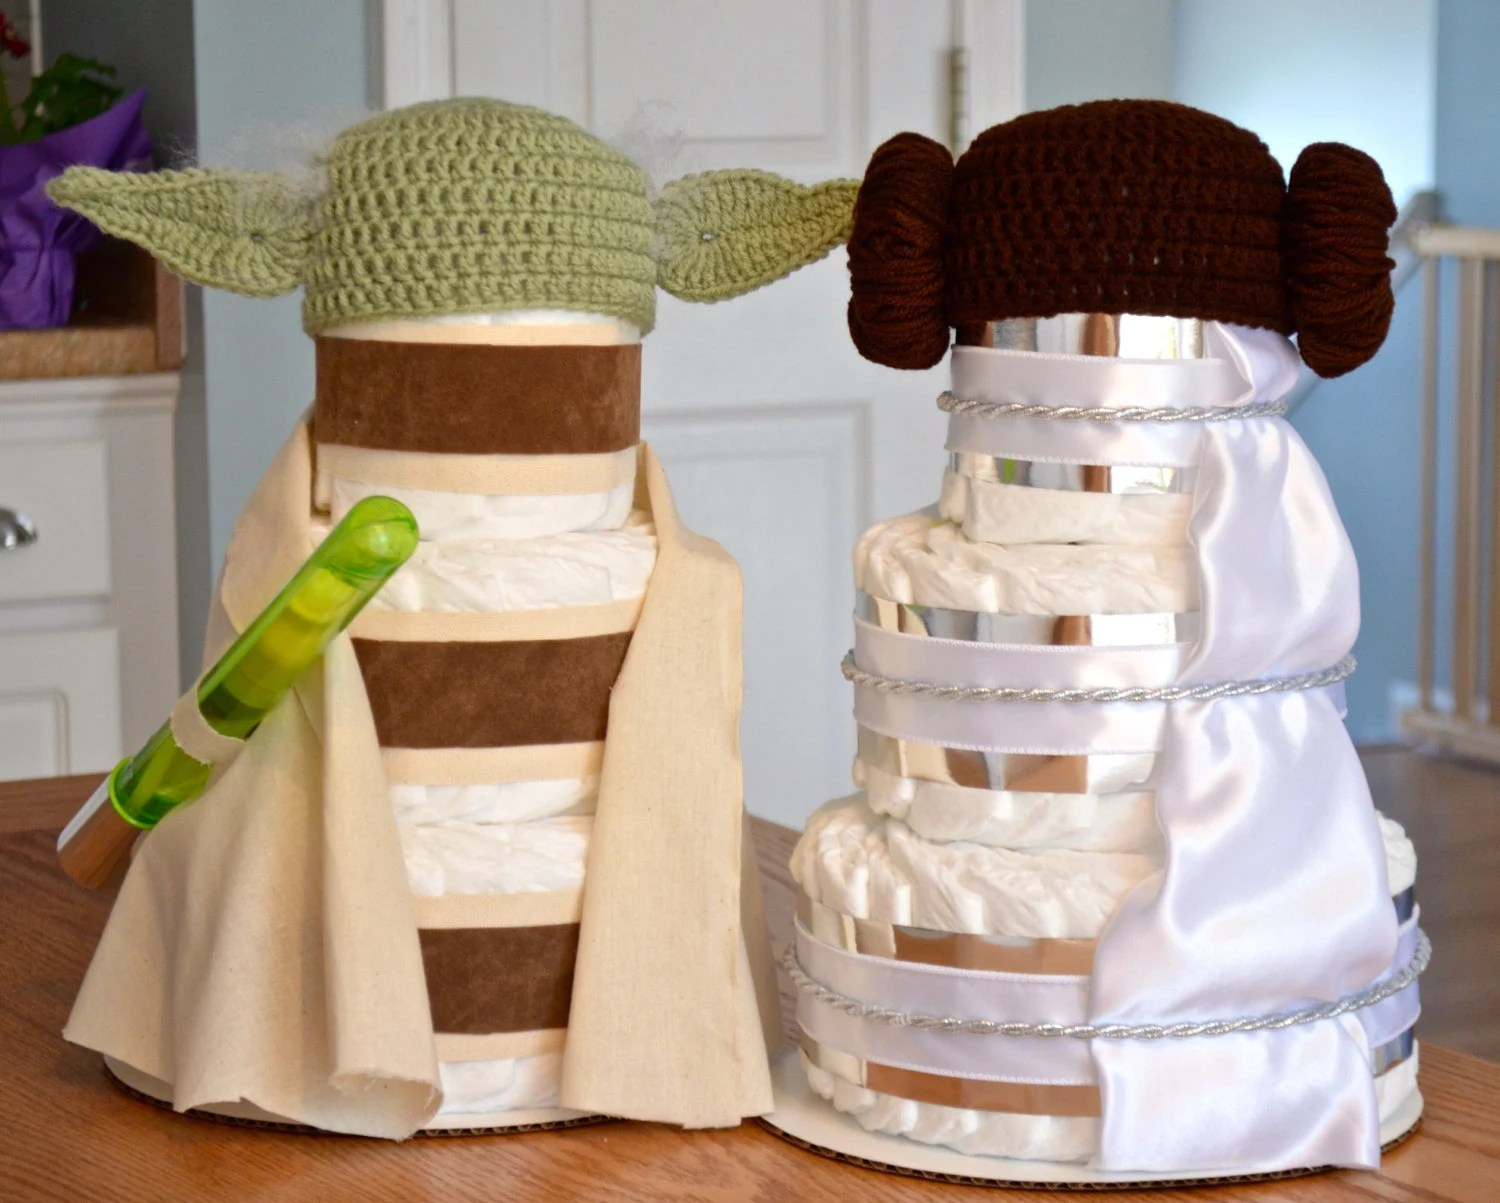 Star Wars Themed Baby Shower Centerpieces Or Decorations